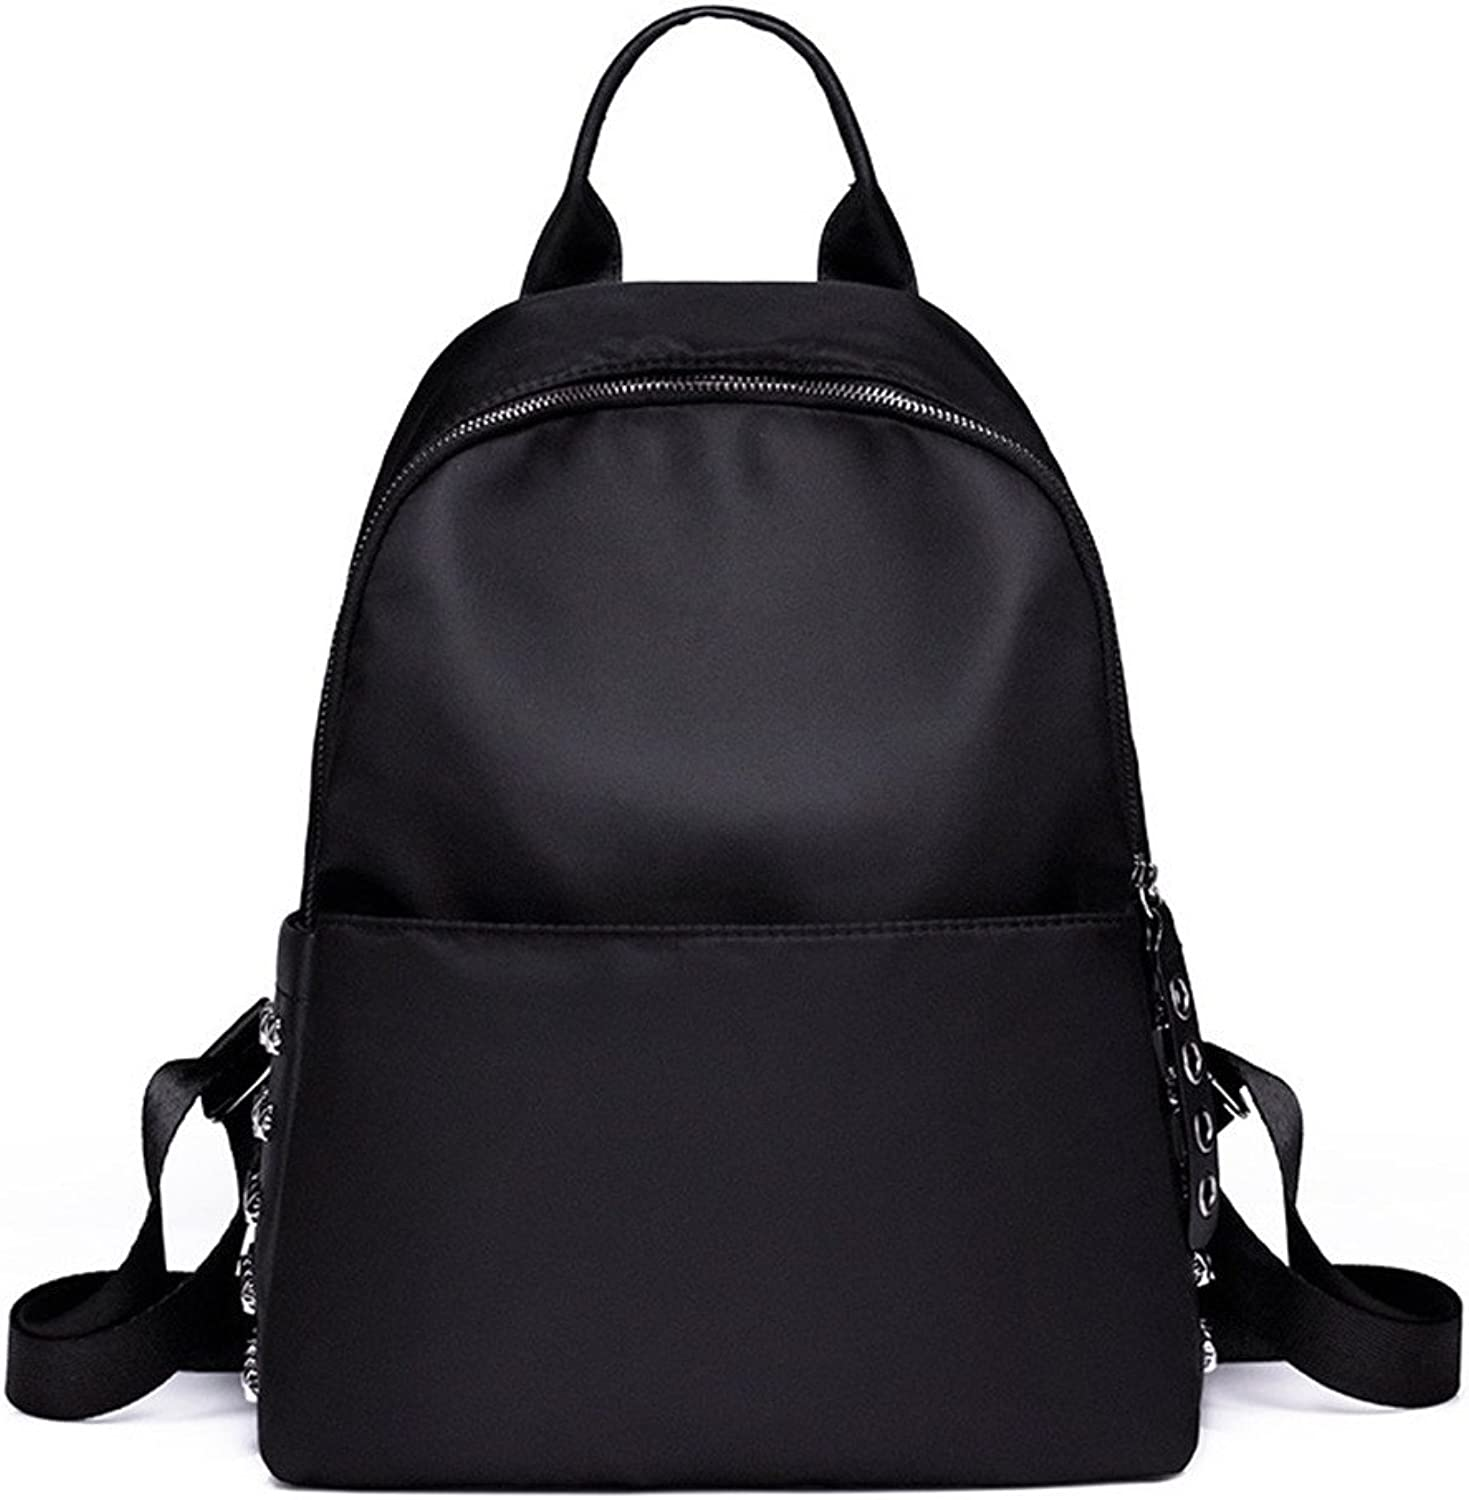 Zhrui Backpack Women School Travel Work Backpack Bag for Girls Casual Fashion with Rivet (color   Black, Size   One Size)